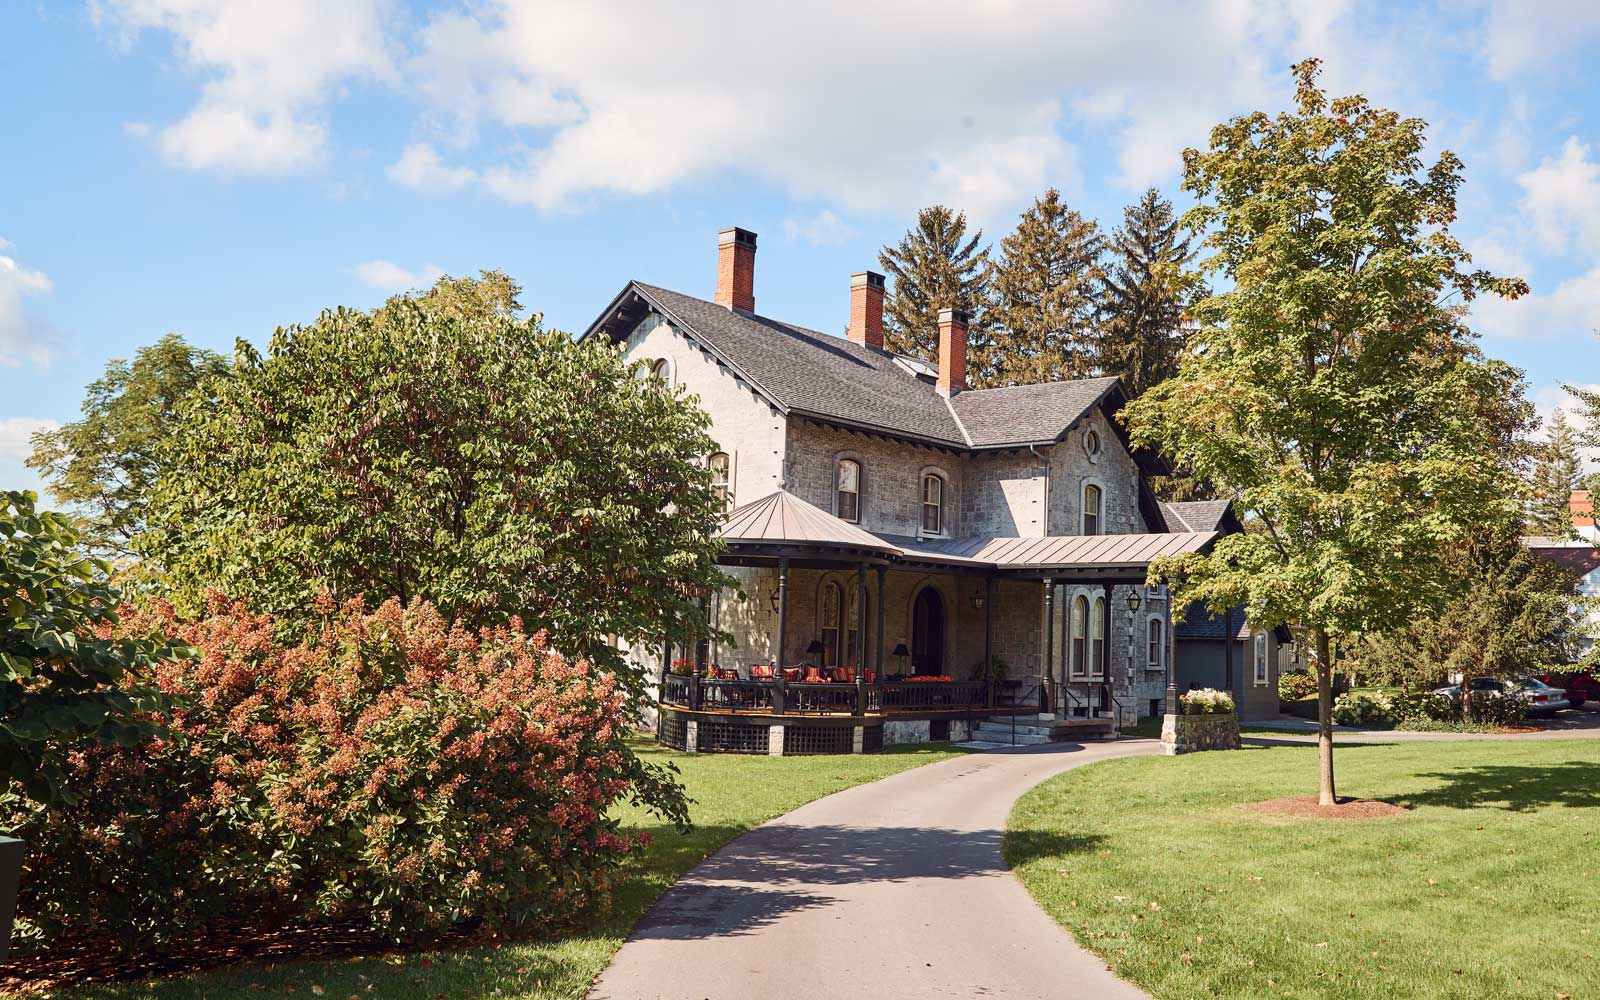 Inns of Aurora EB Morgan House, in the Finger Lakes region